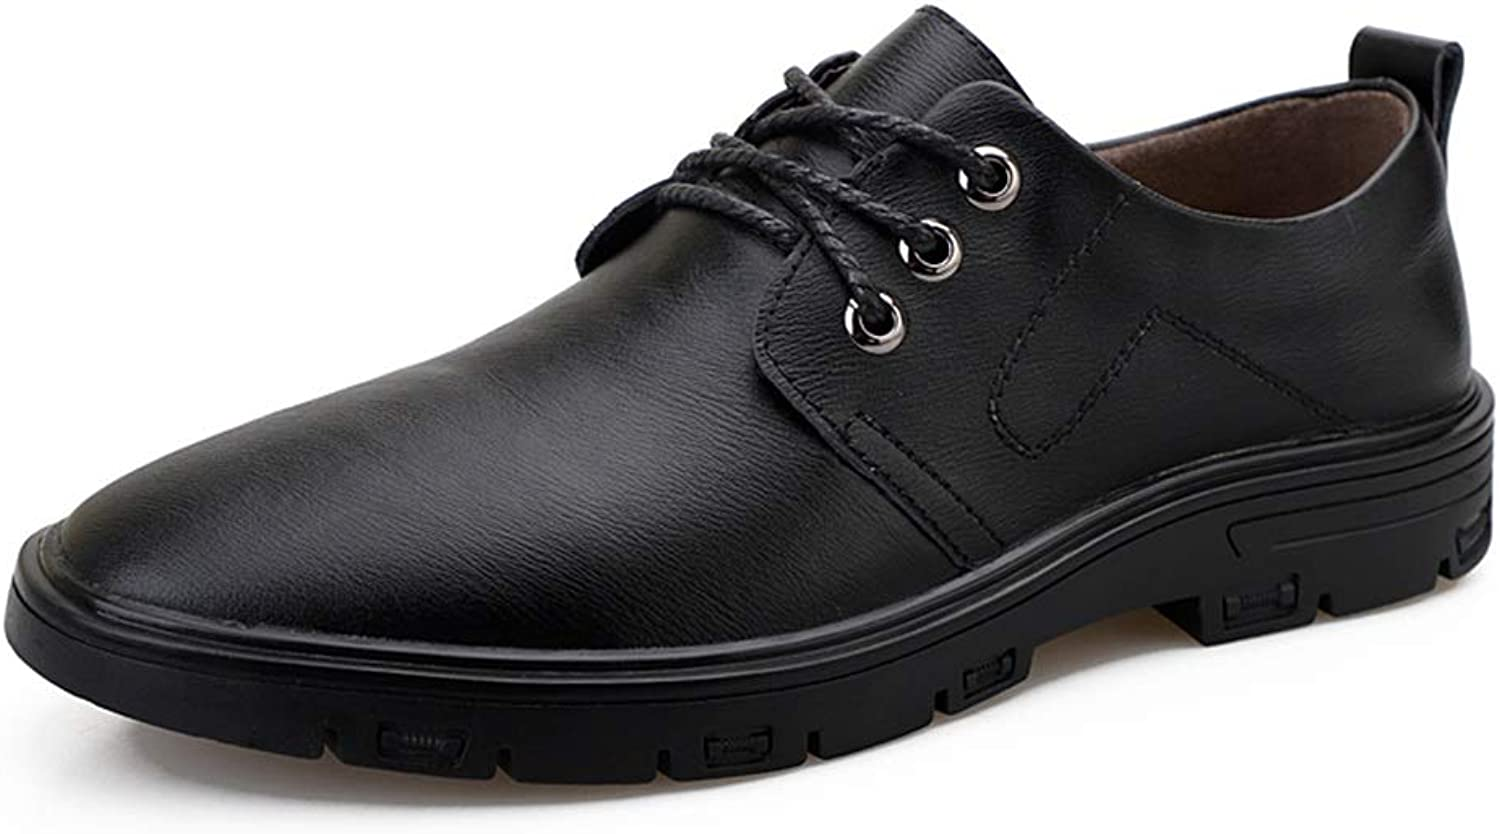 JUJIANFU-shoes Oxford shoes for Men Stately shoes Lace Up Style OX Leather Classic Solid color Insouciant Business Outsole